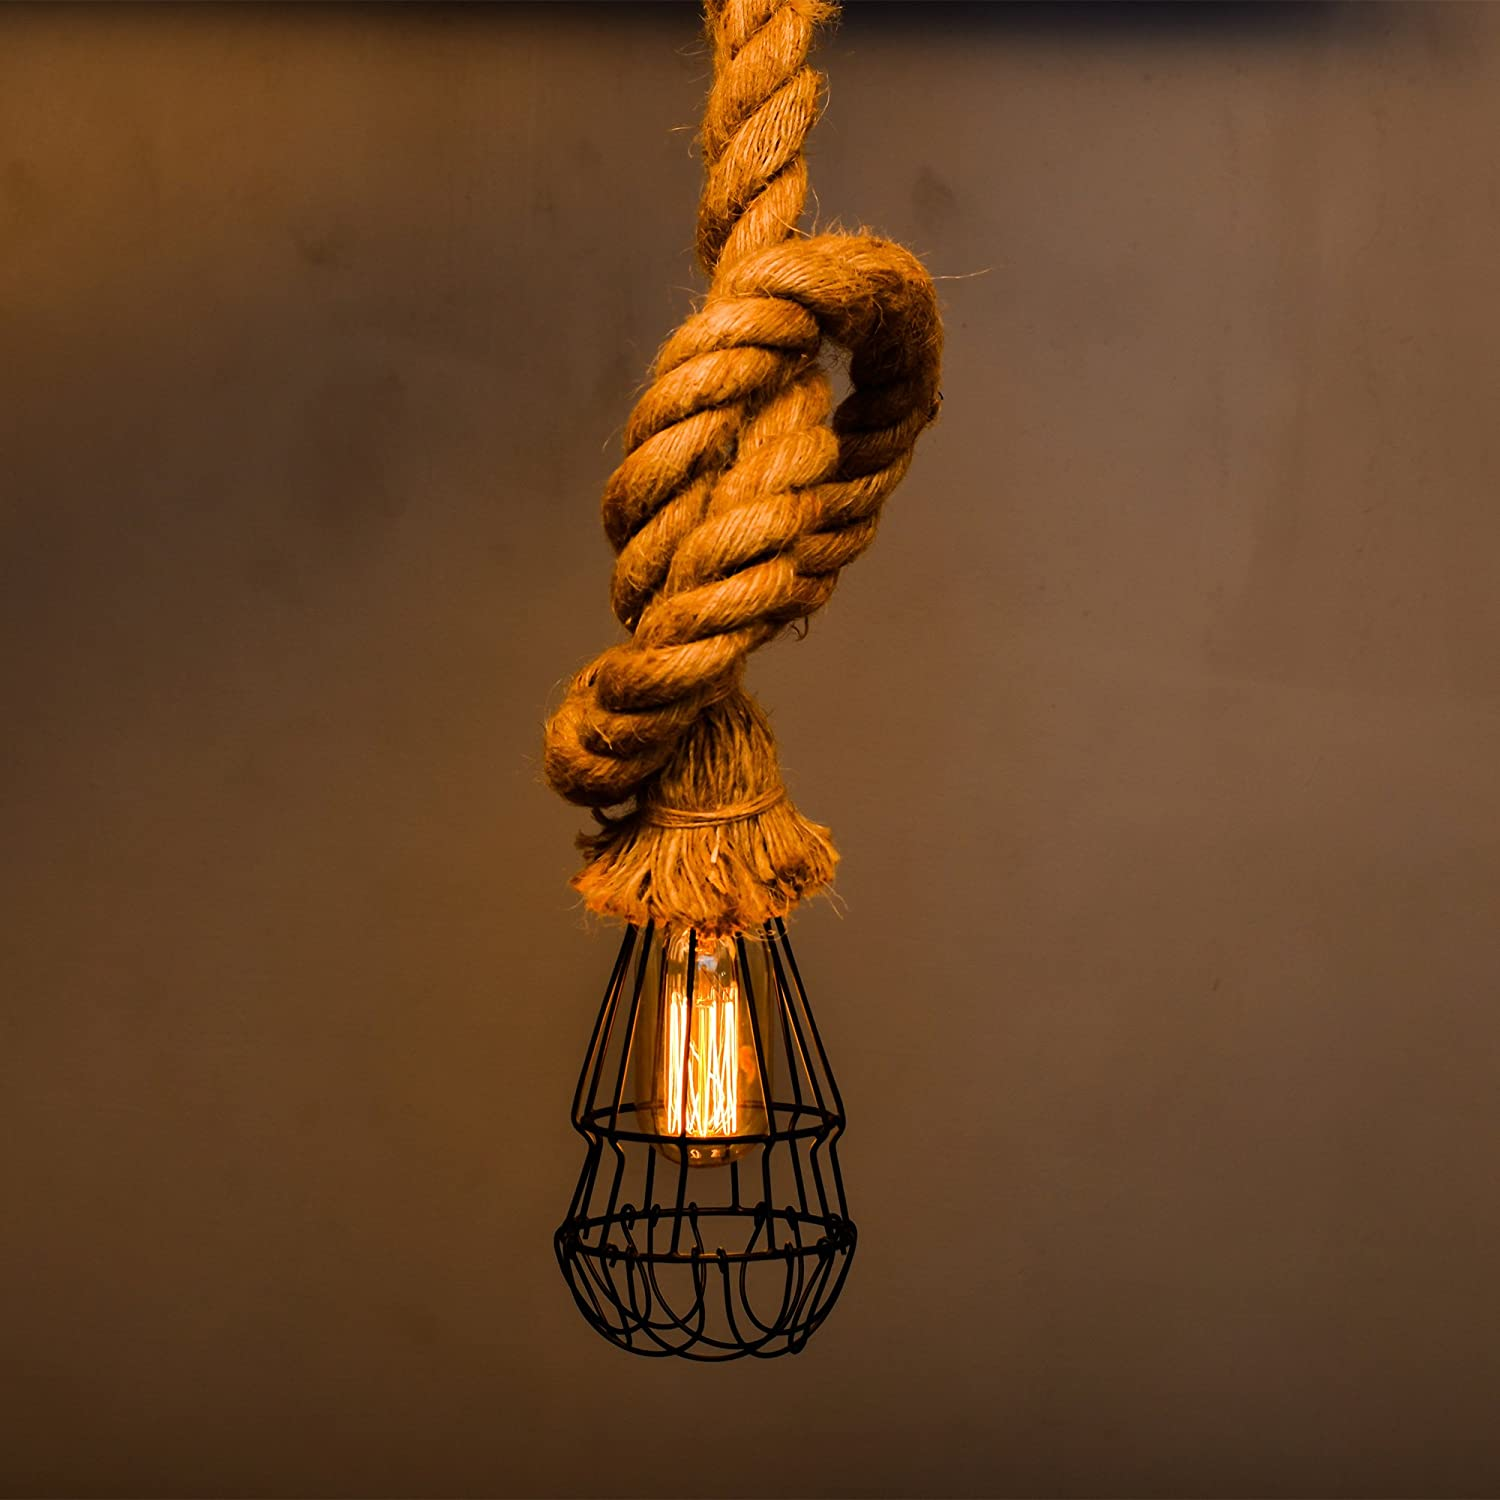 Buy Homesake Jute Rustic Hanging Rope Cage Lampretro Pendant Light Wiring A Lamp Knot With Filament Bulb T45 Cafe Lights 12m Lengthbeige Online At Low Prices In India